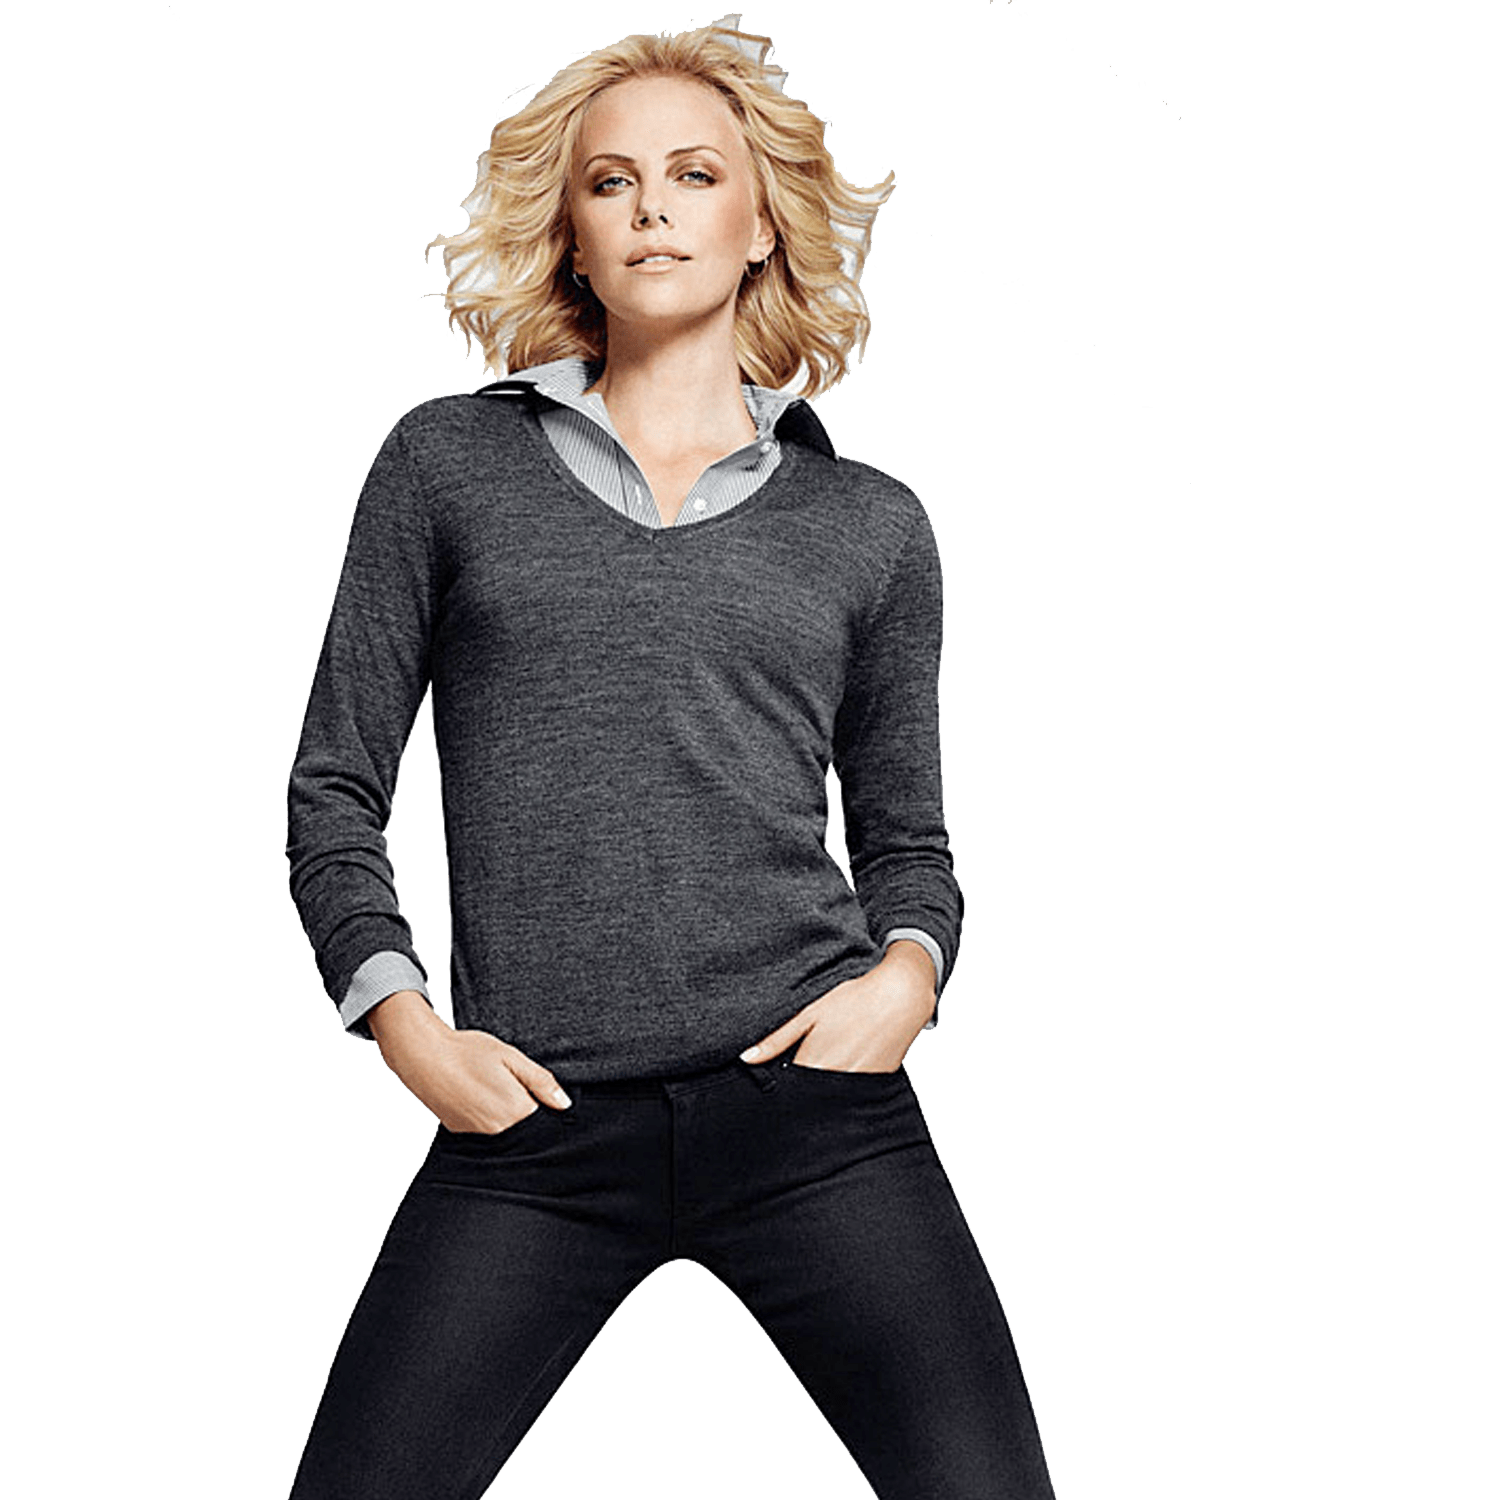 Charlize Theron PNG Transparent Image - Charlize Theron PNG